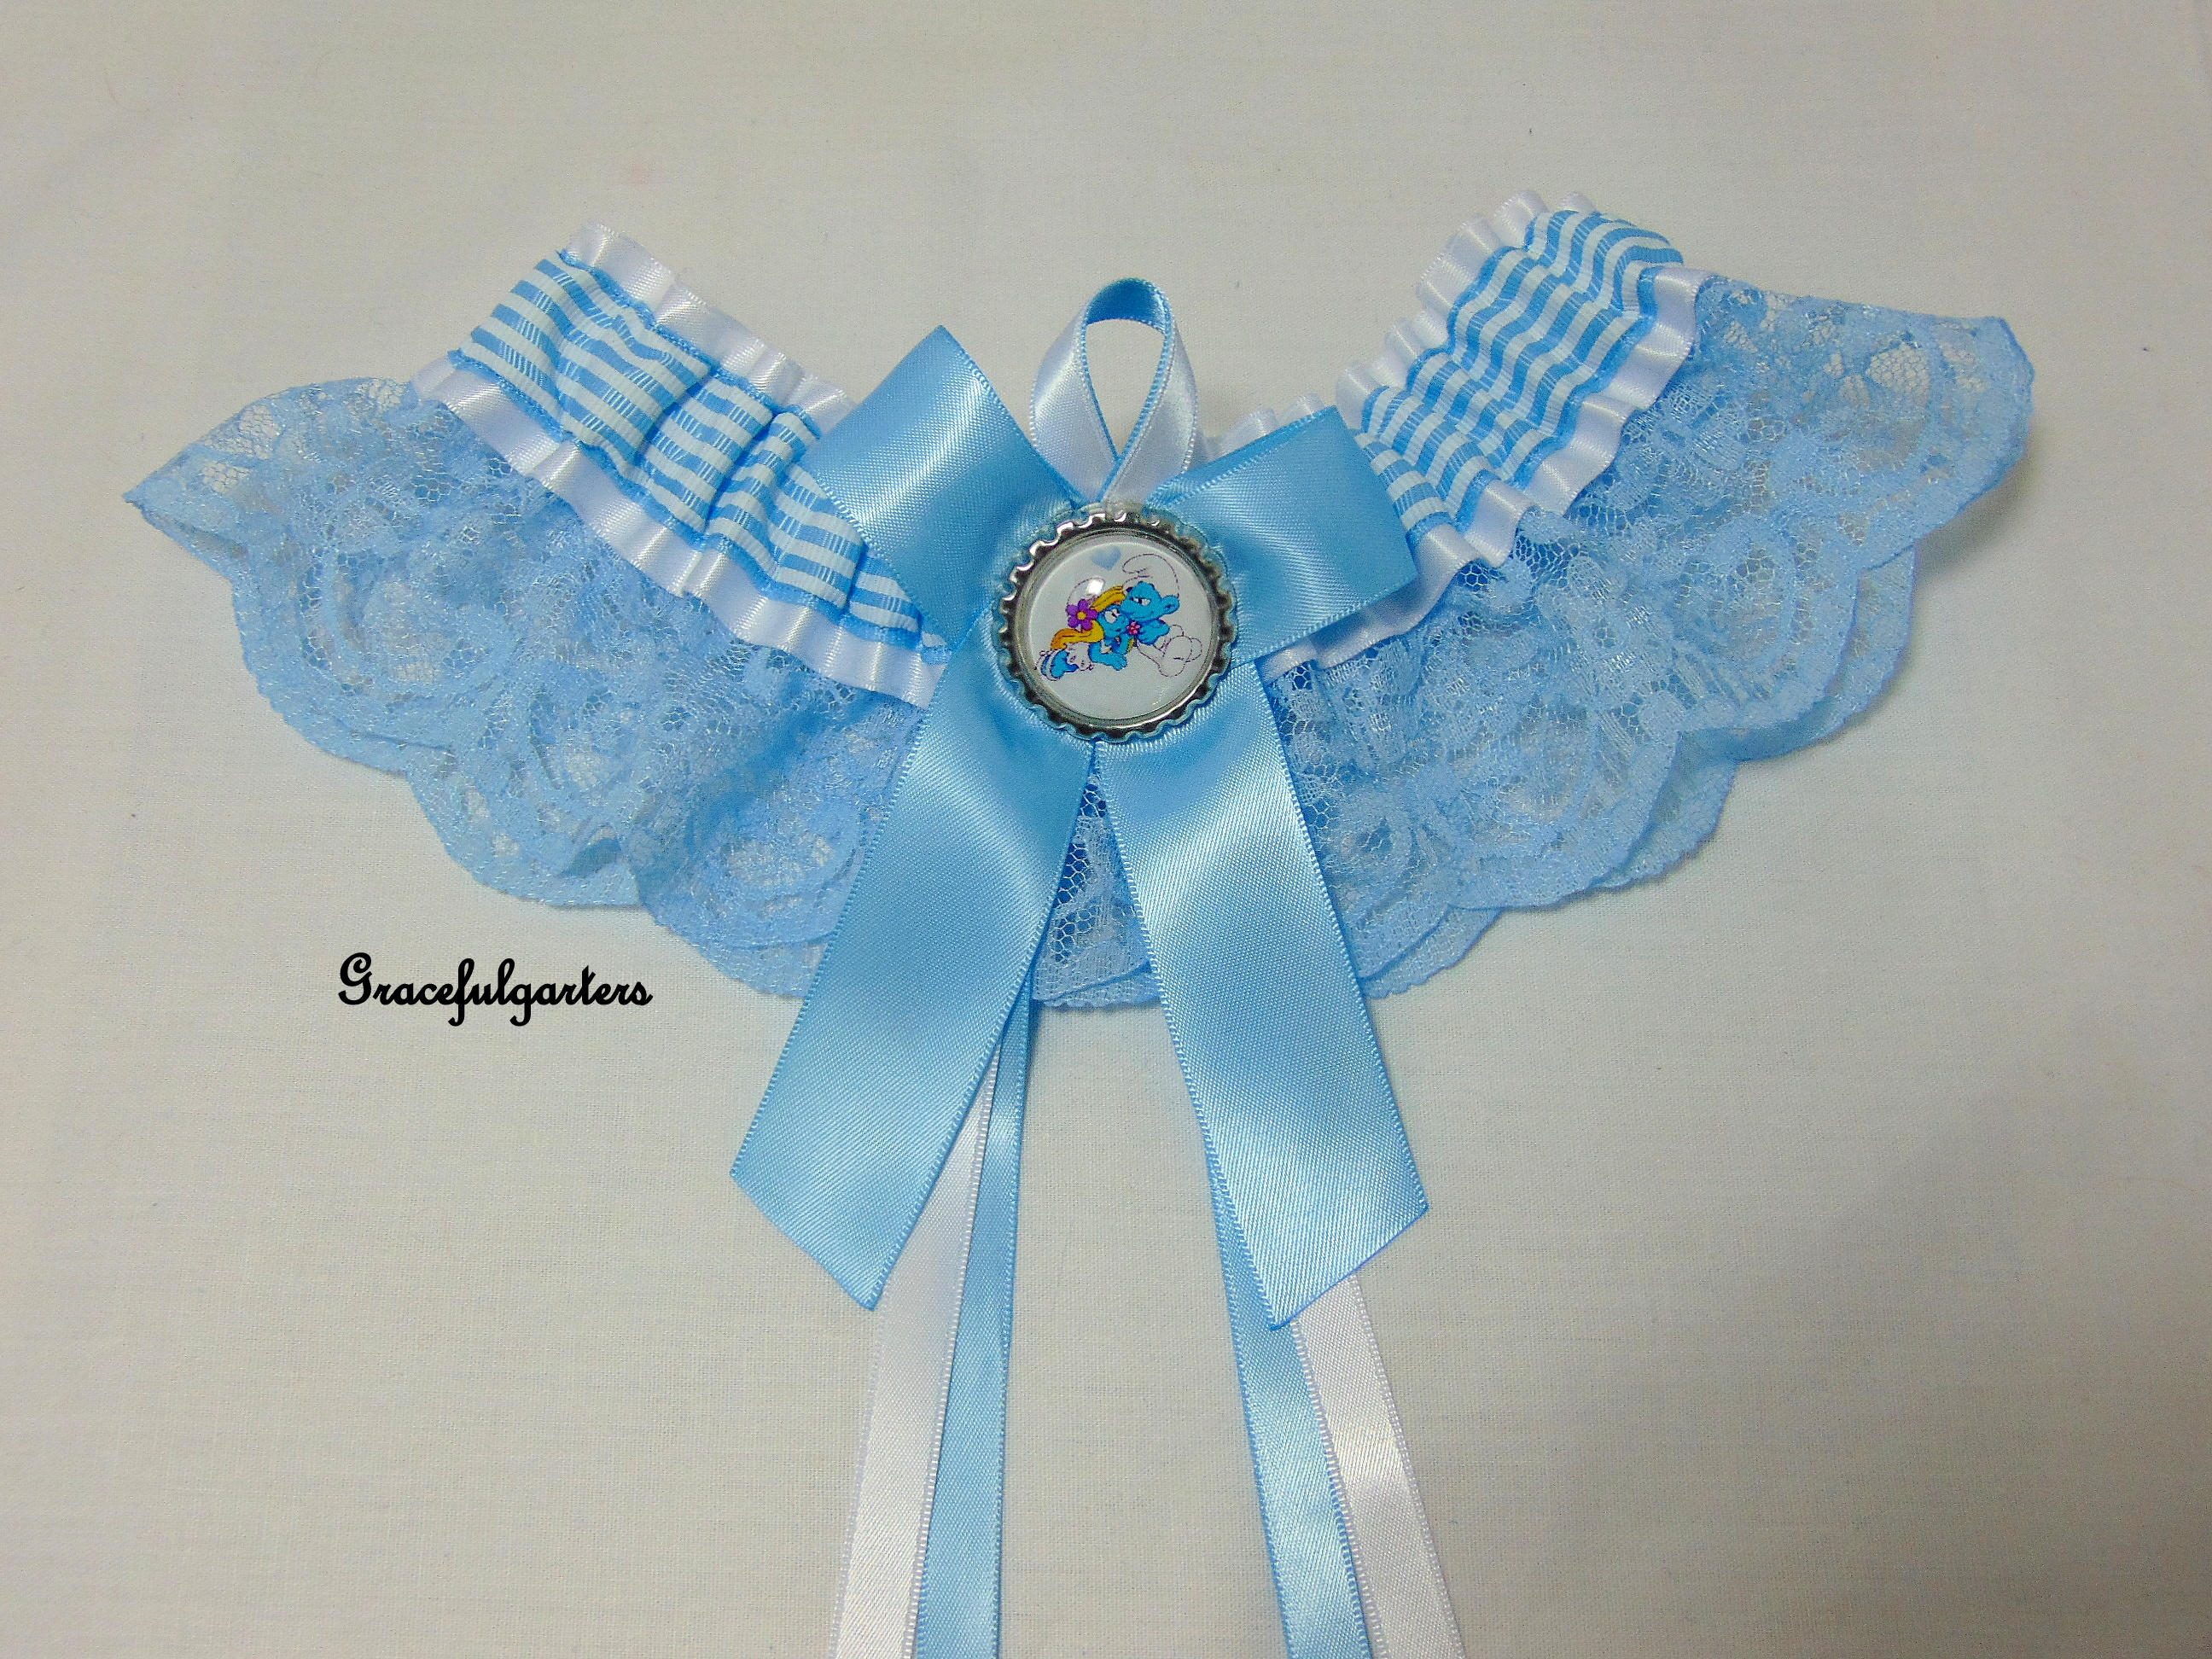 Blue Smurfs Lace Bridal Wedding Garter.